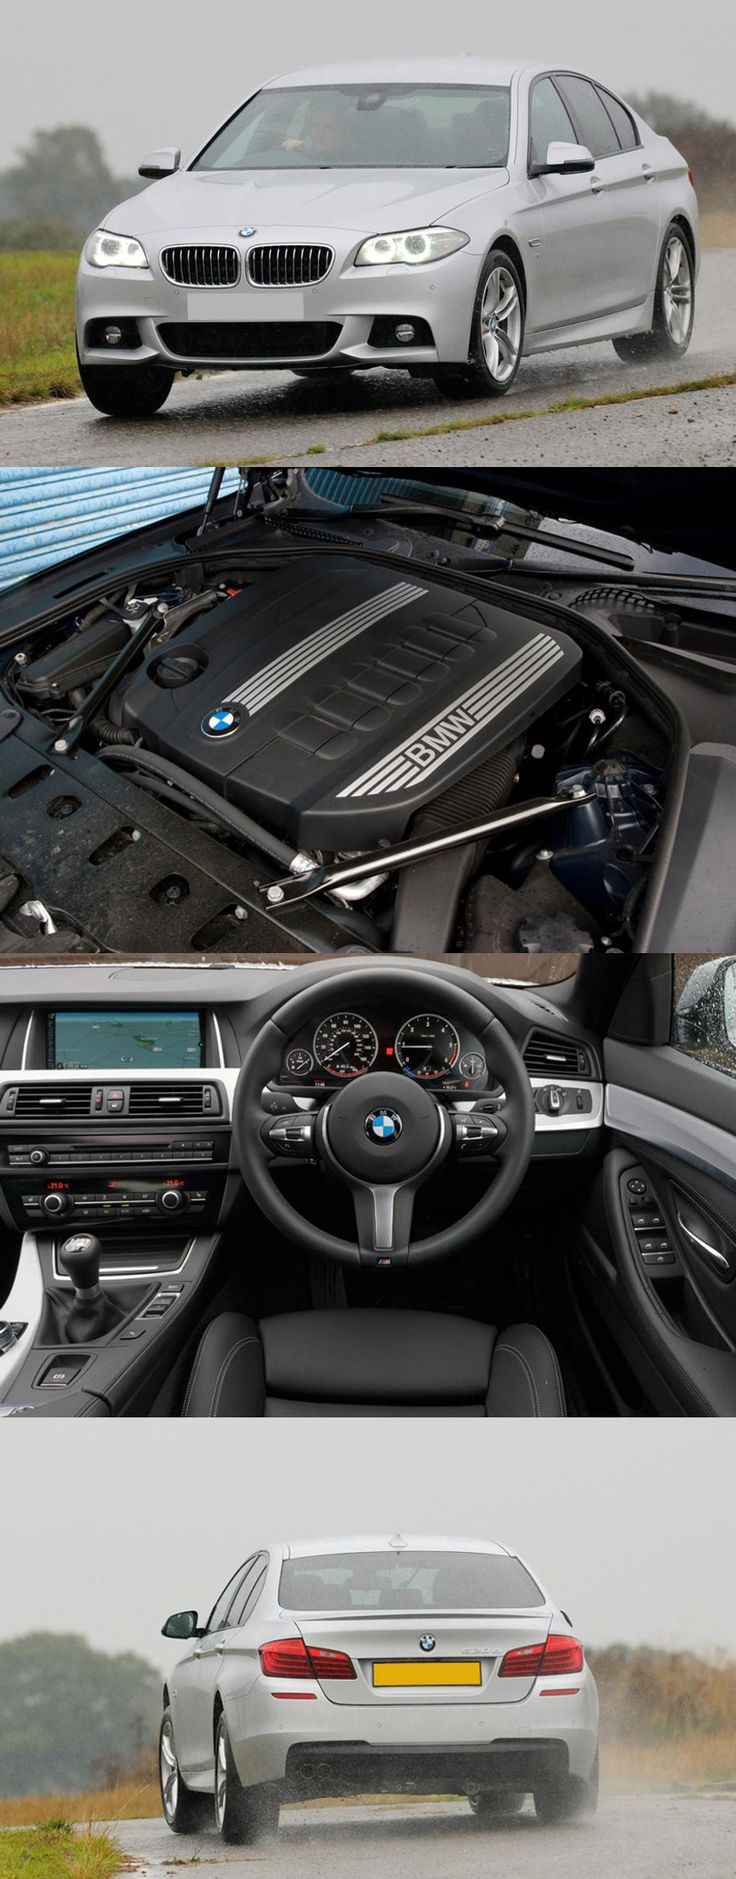 BMW 520i Engine is befitting for a Luxurious Saloon For more detail:https://www.germancartech.co.uk/blog/bmw-520i-engine-befitting-luxurious-saloon/